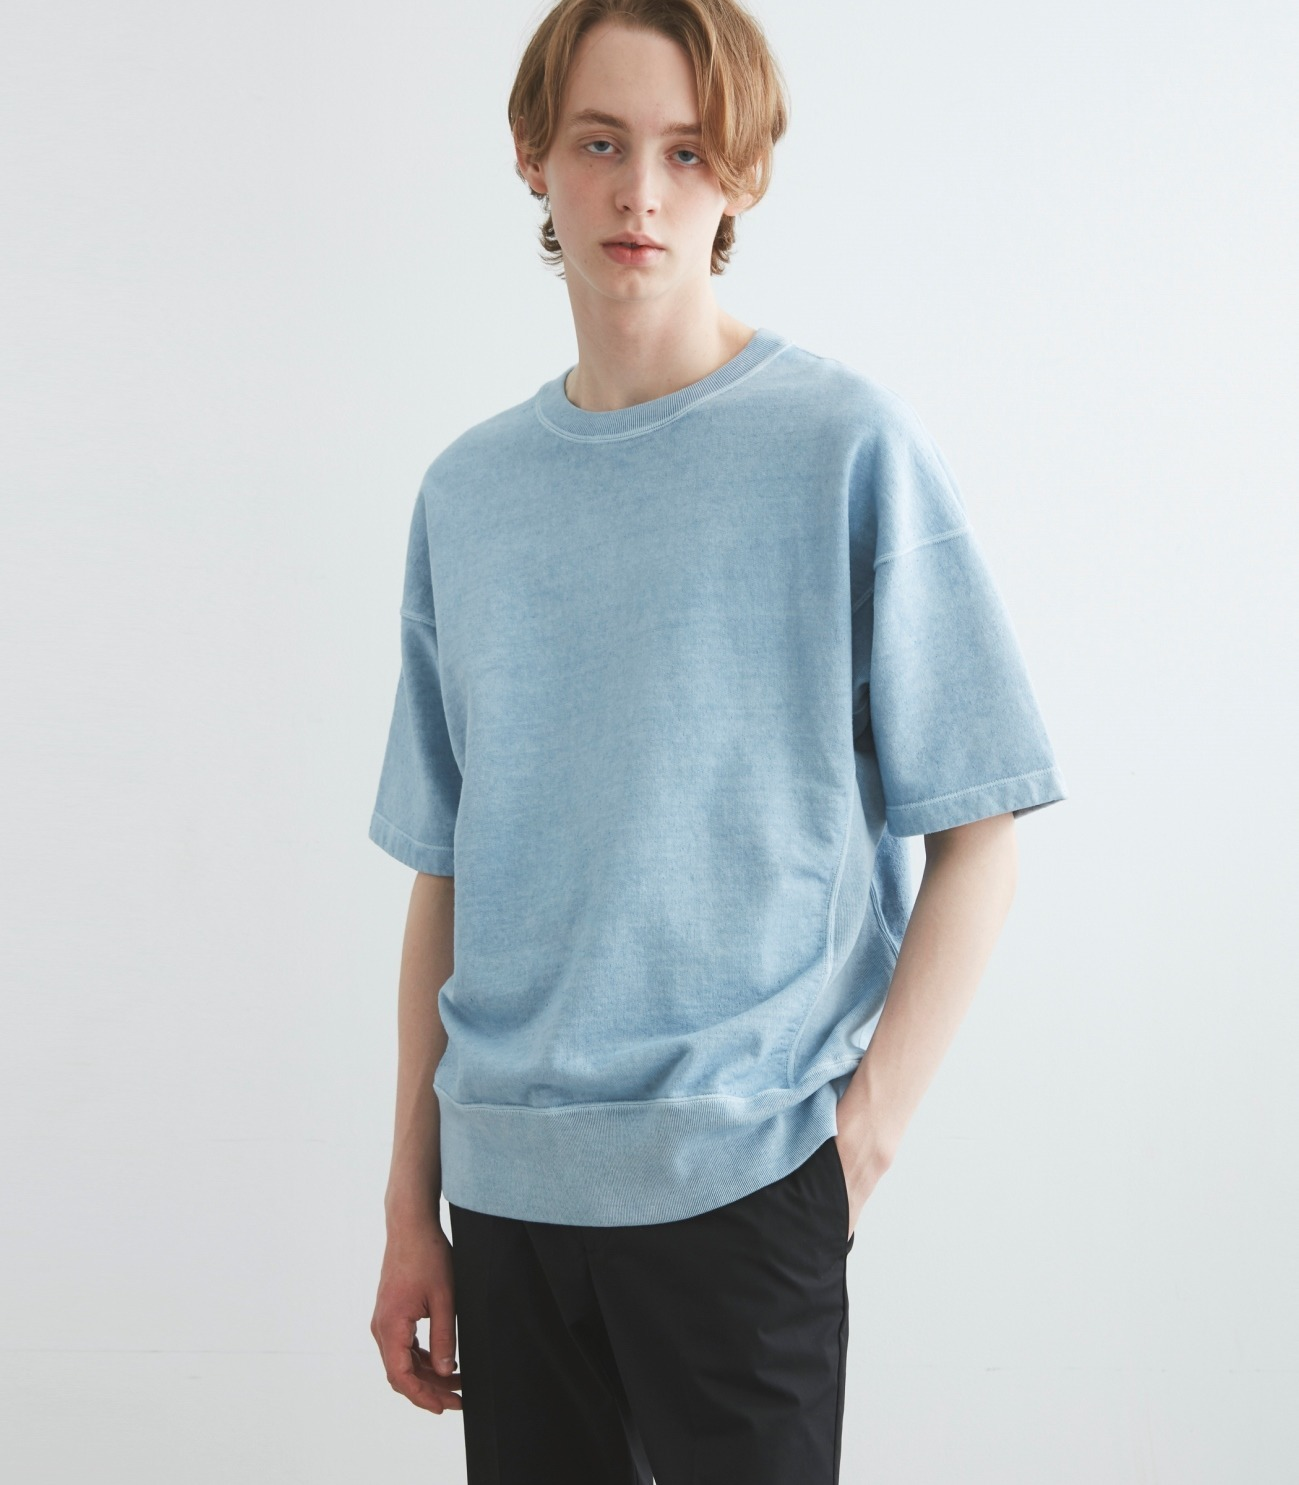 pigment dye cotton s/s  sweat 詳細画像 blue 5